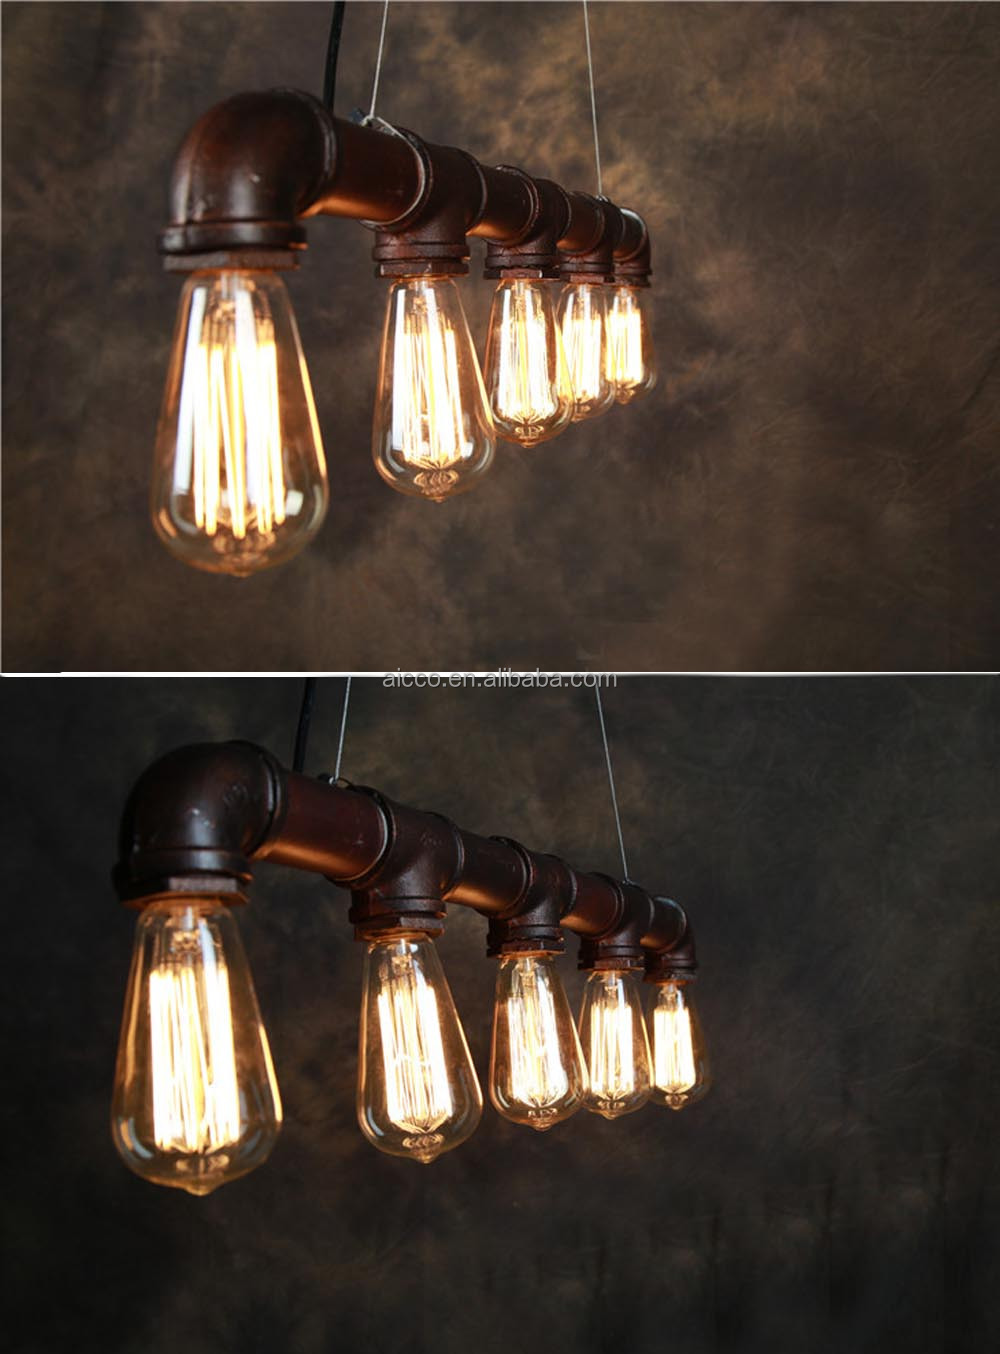 Aicco new design china manufacturer cheap battery powered pendant lights view battery powered pendant lights aicco product details from zhongshan